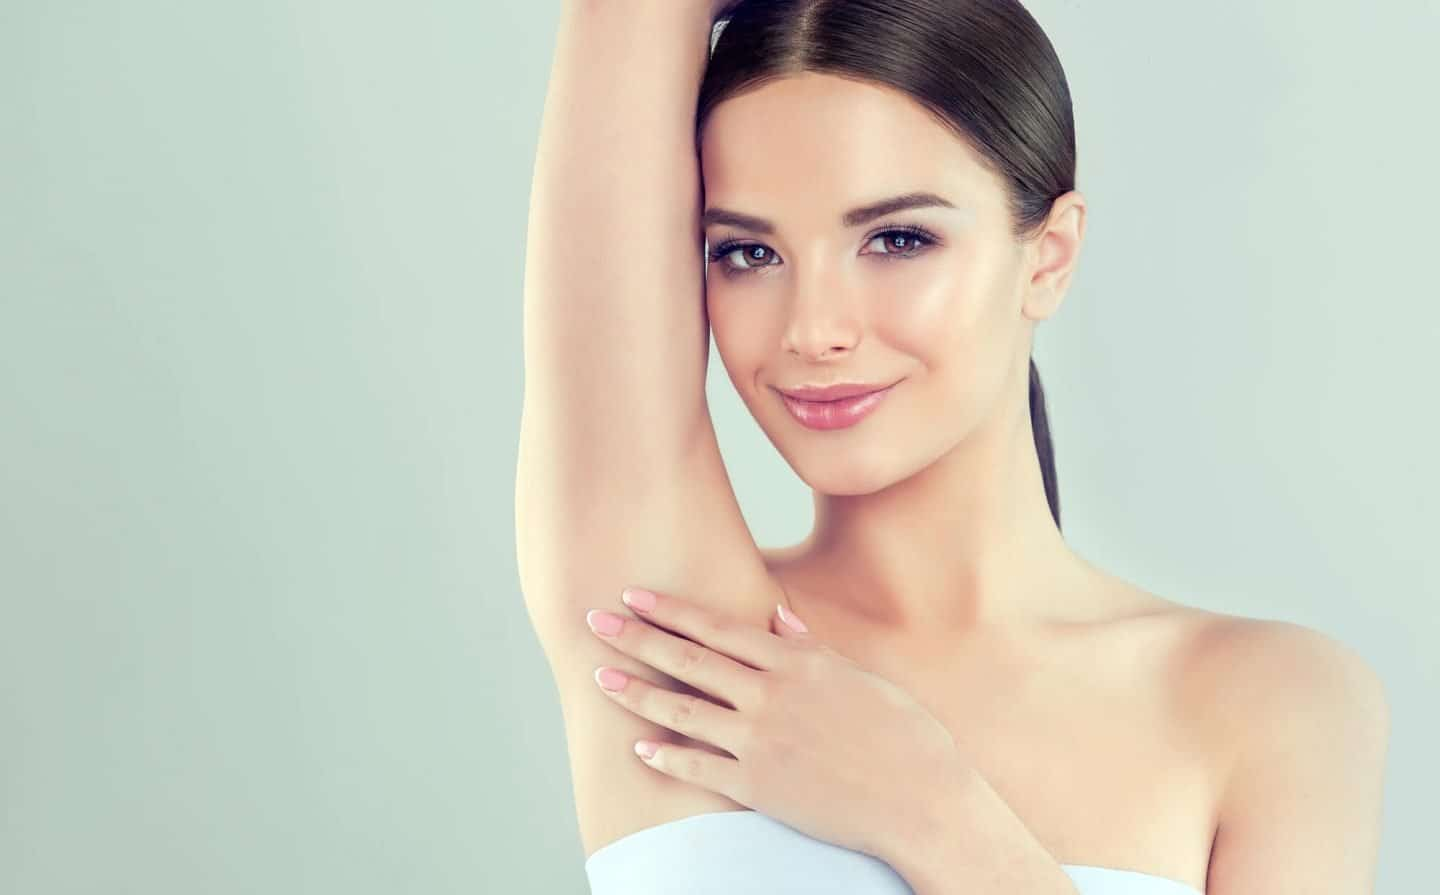 Lasers: Do They Work for Hair Removal?